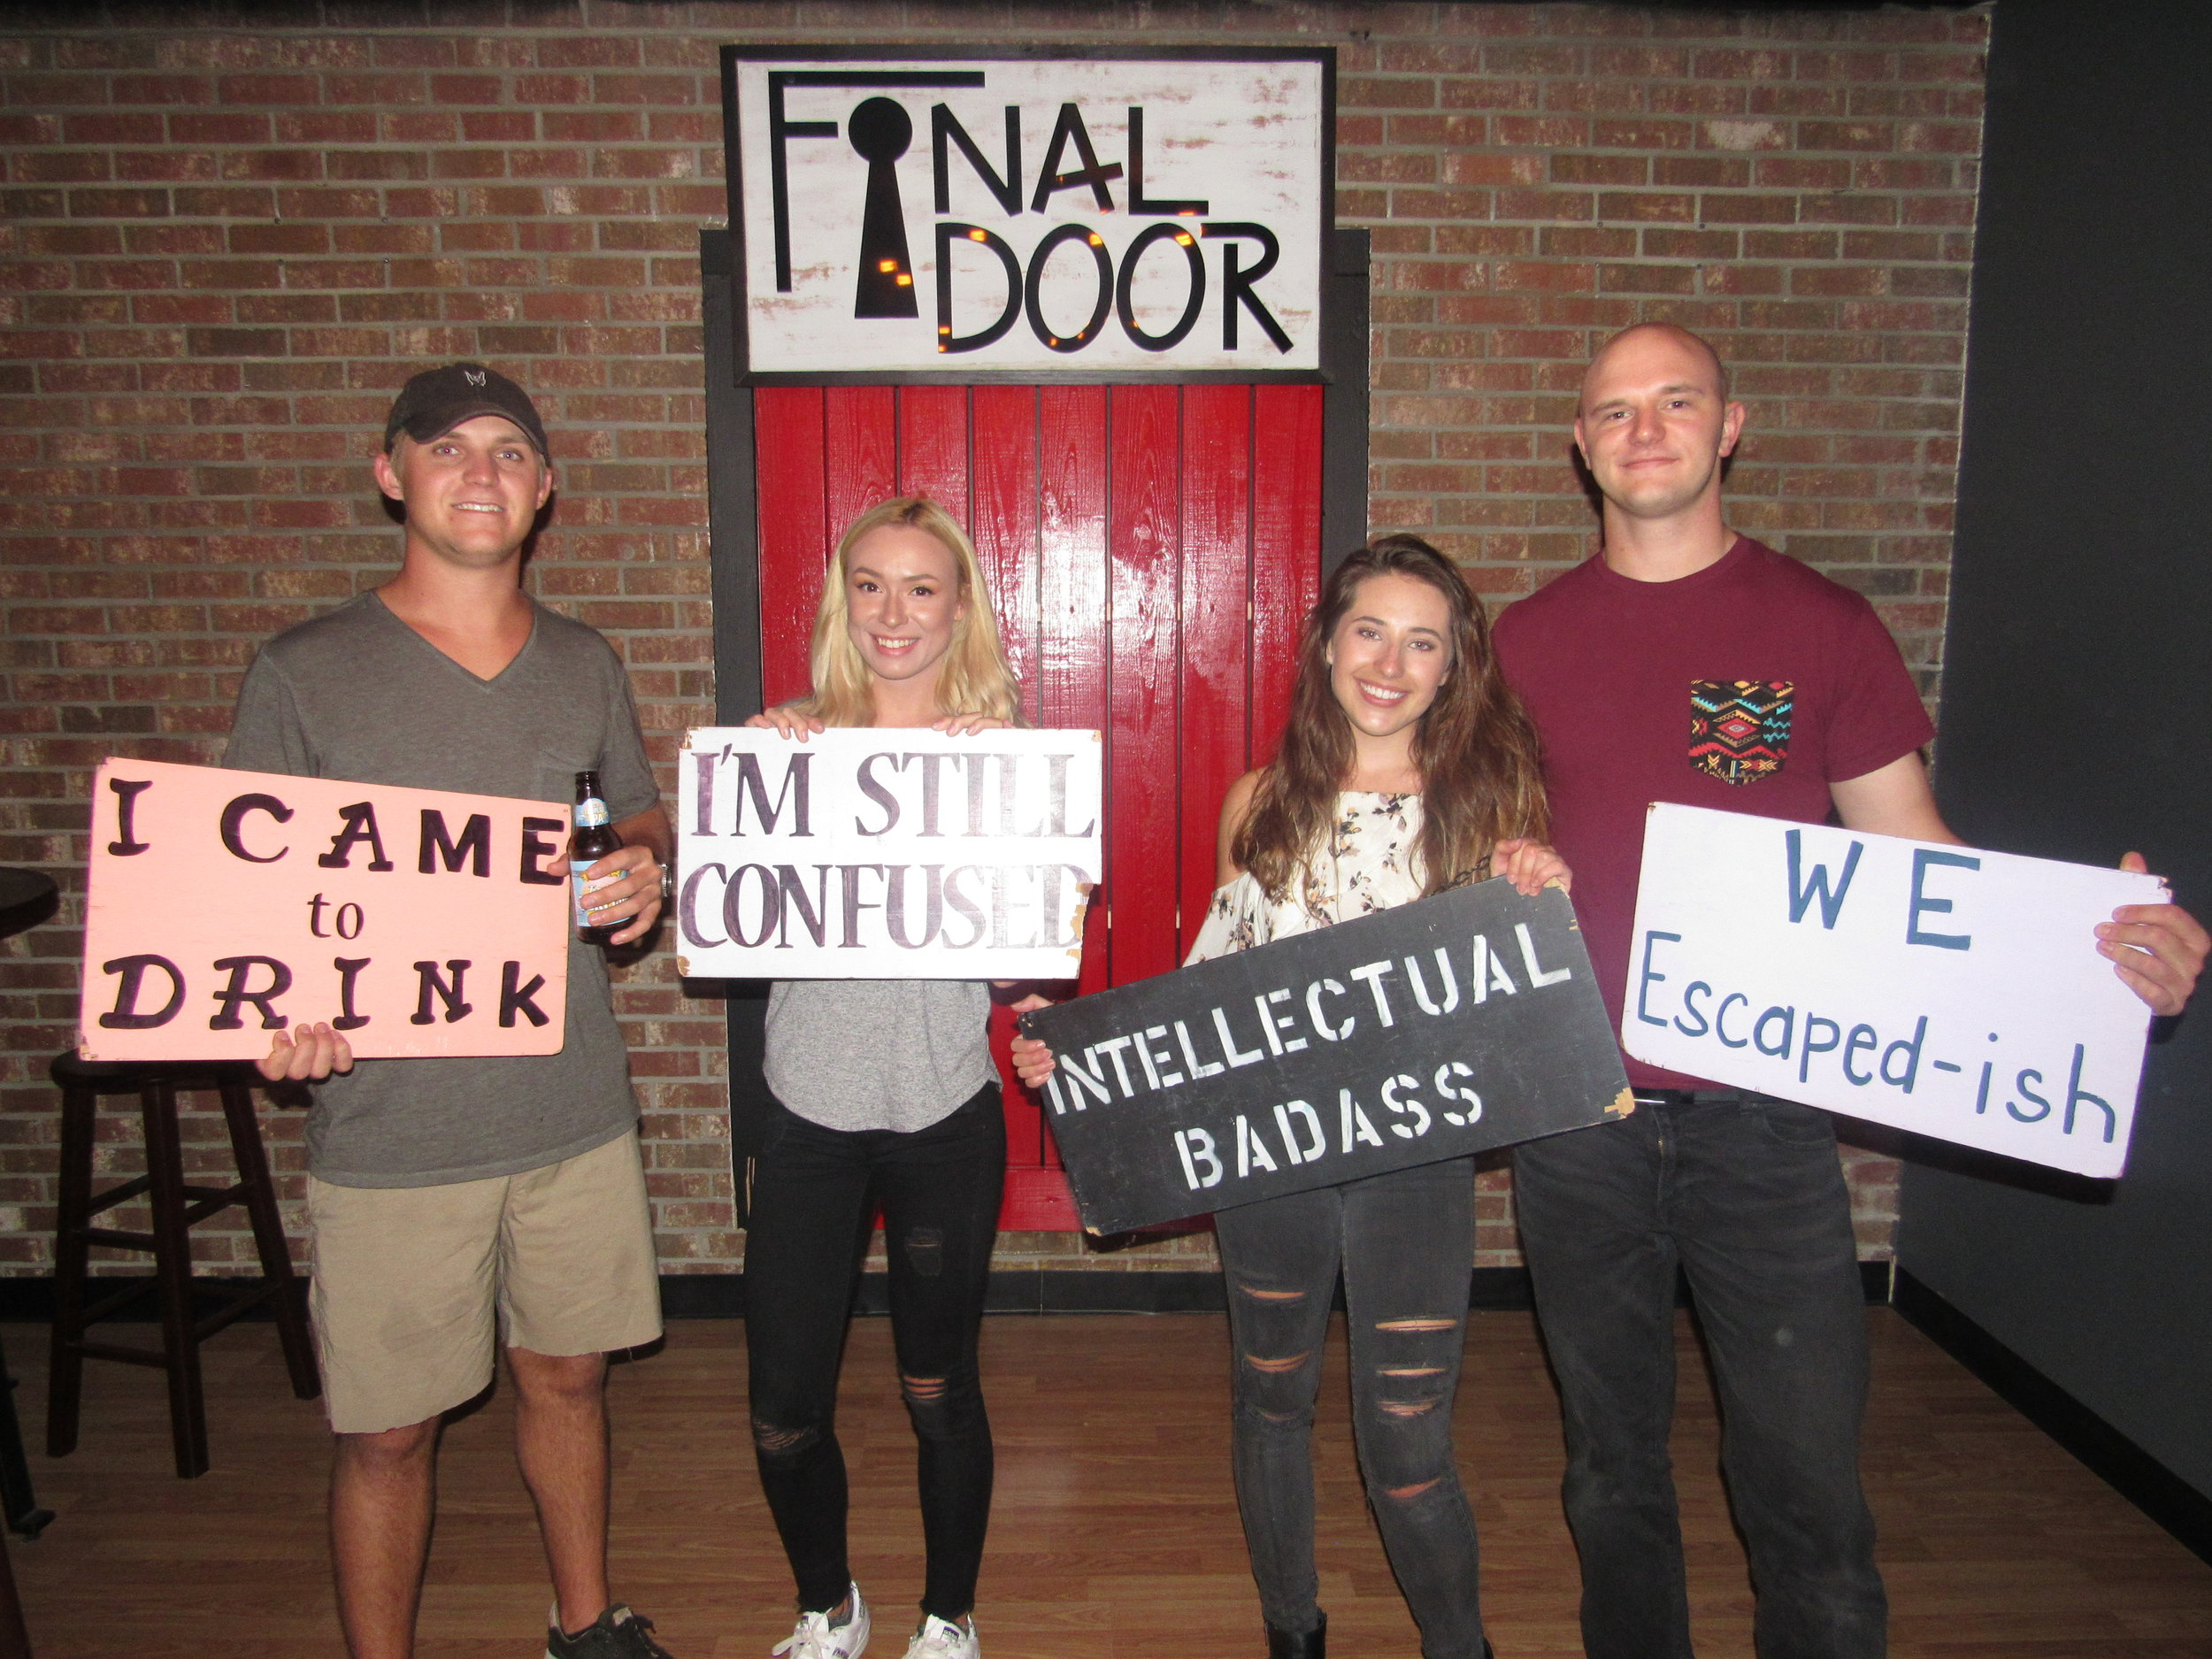 the-final-door-escape-room-columbia-sc-team-photos-aug-18-2018-15.JPG